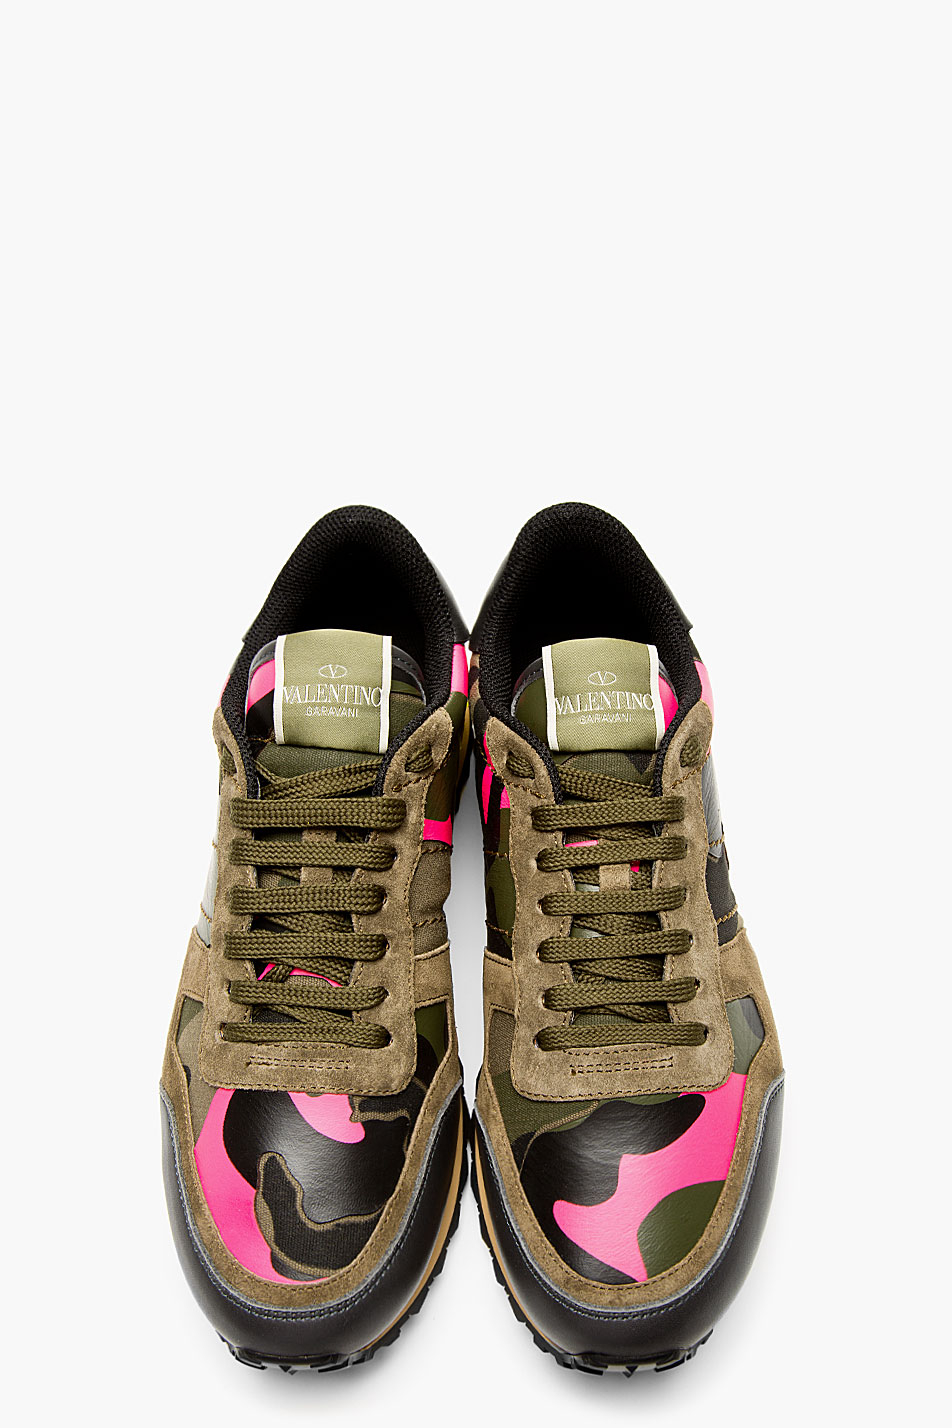 lyst valentino green camo studded running shoes in green